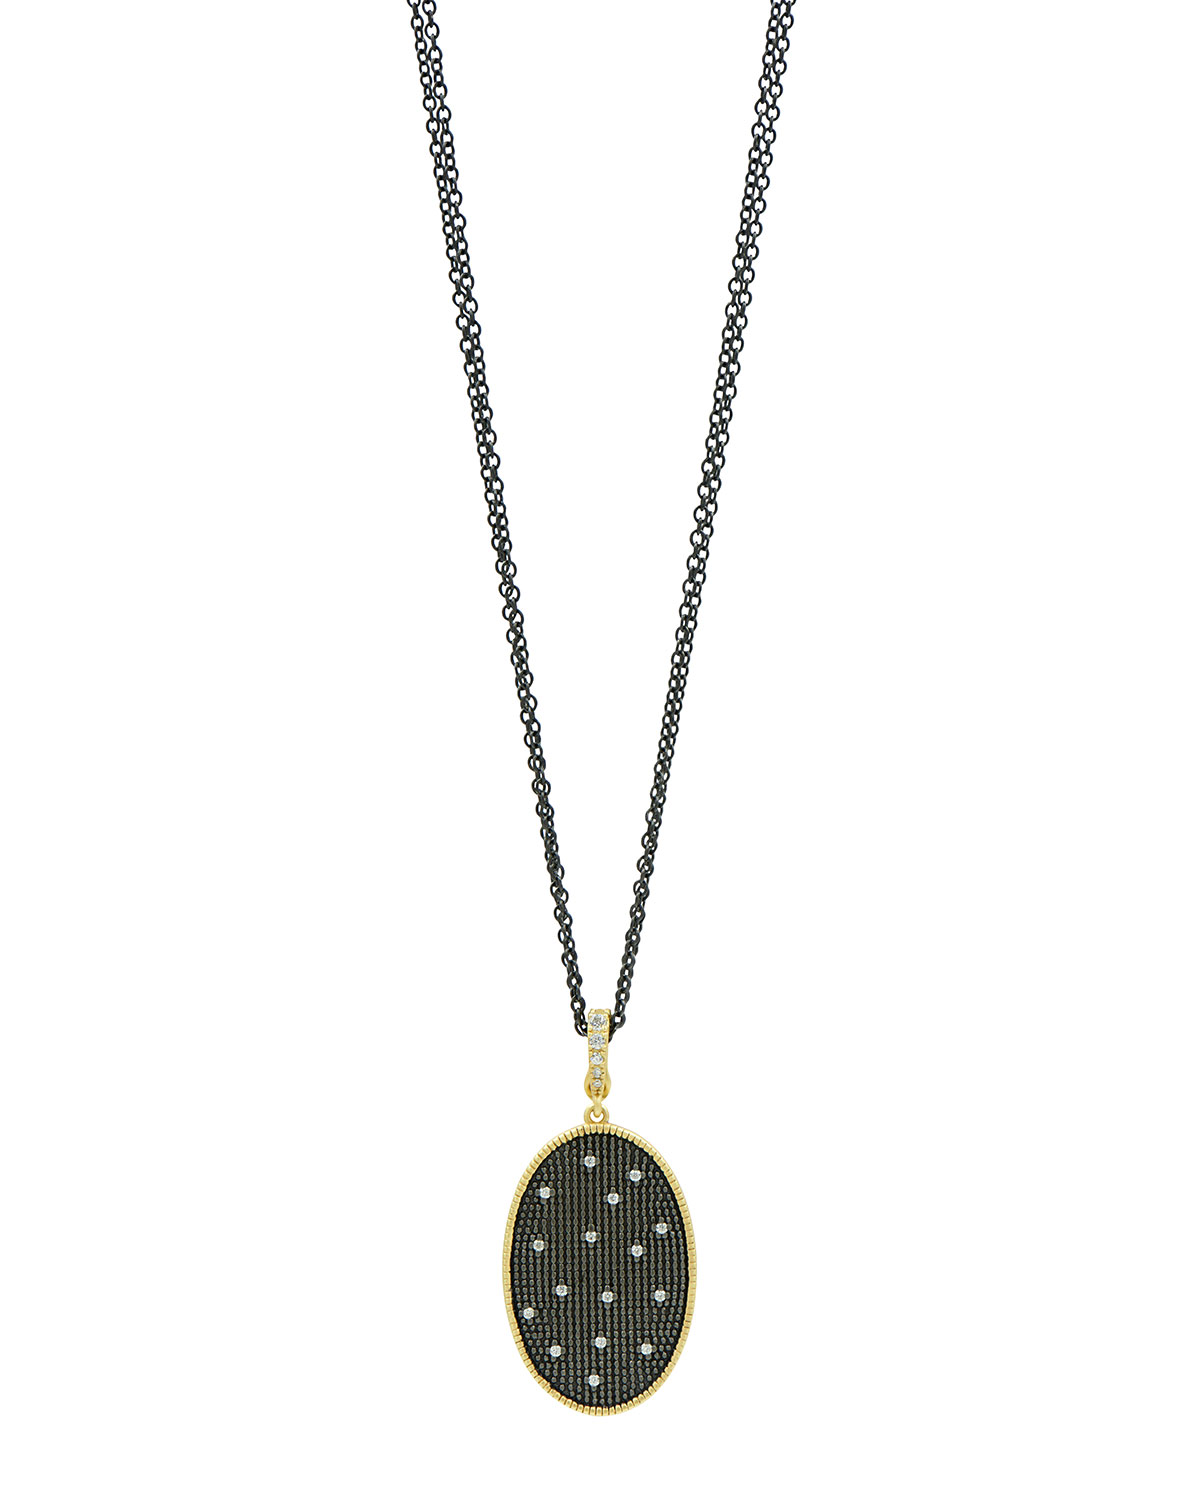 Double-Sided Pendant Necklace